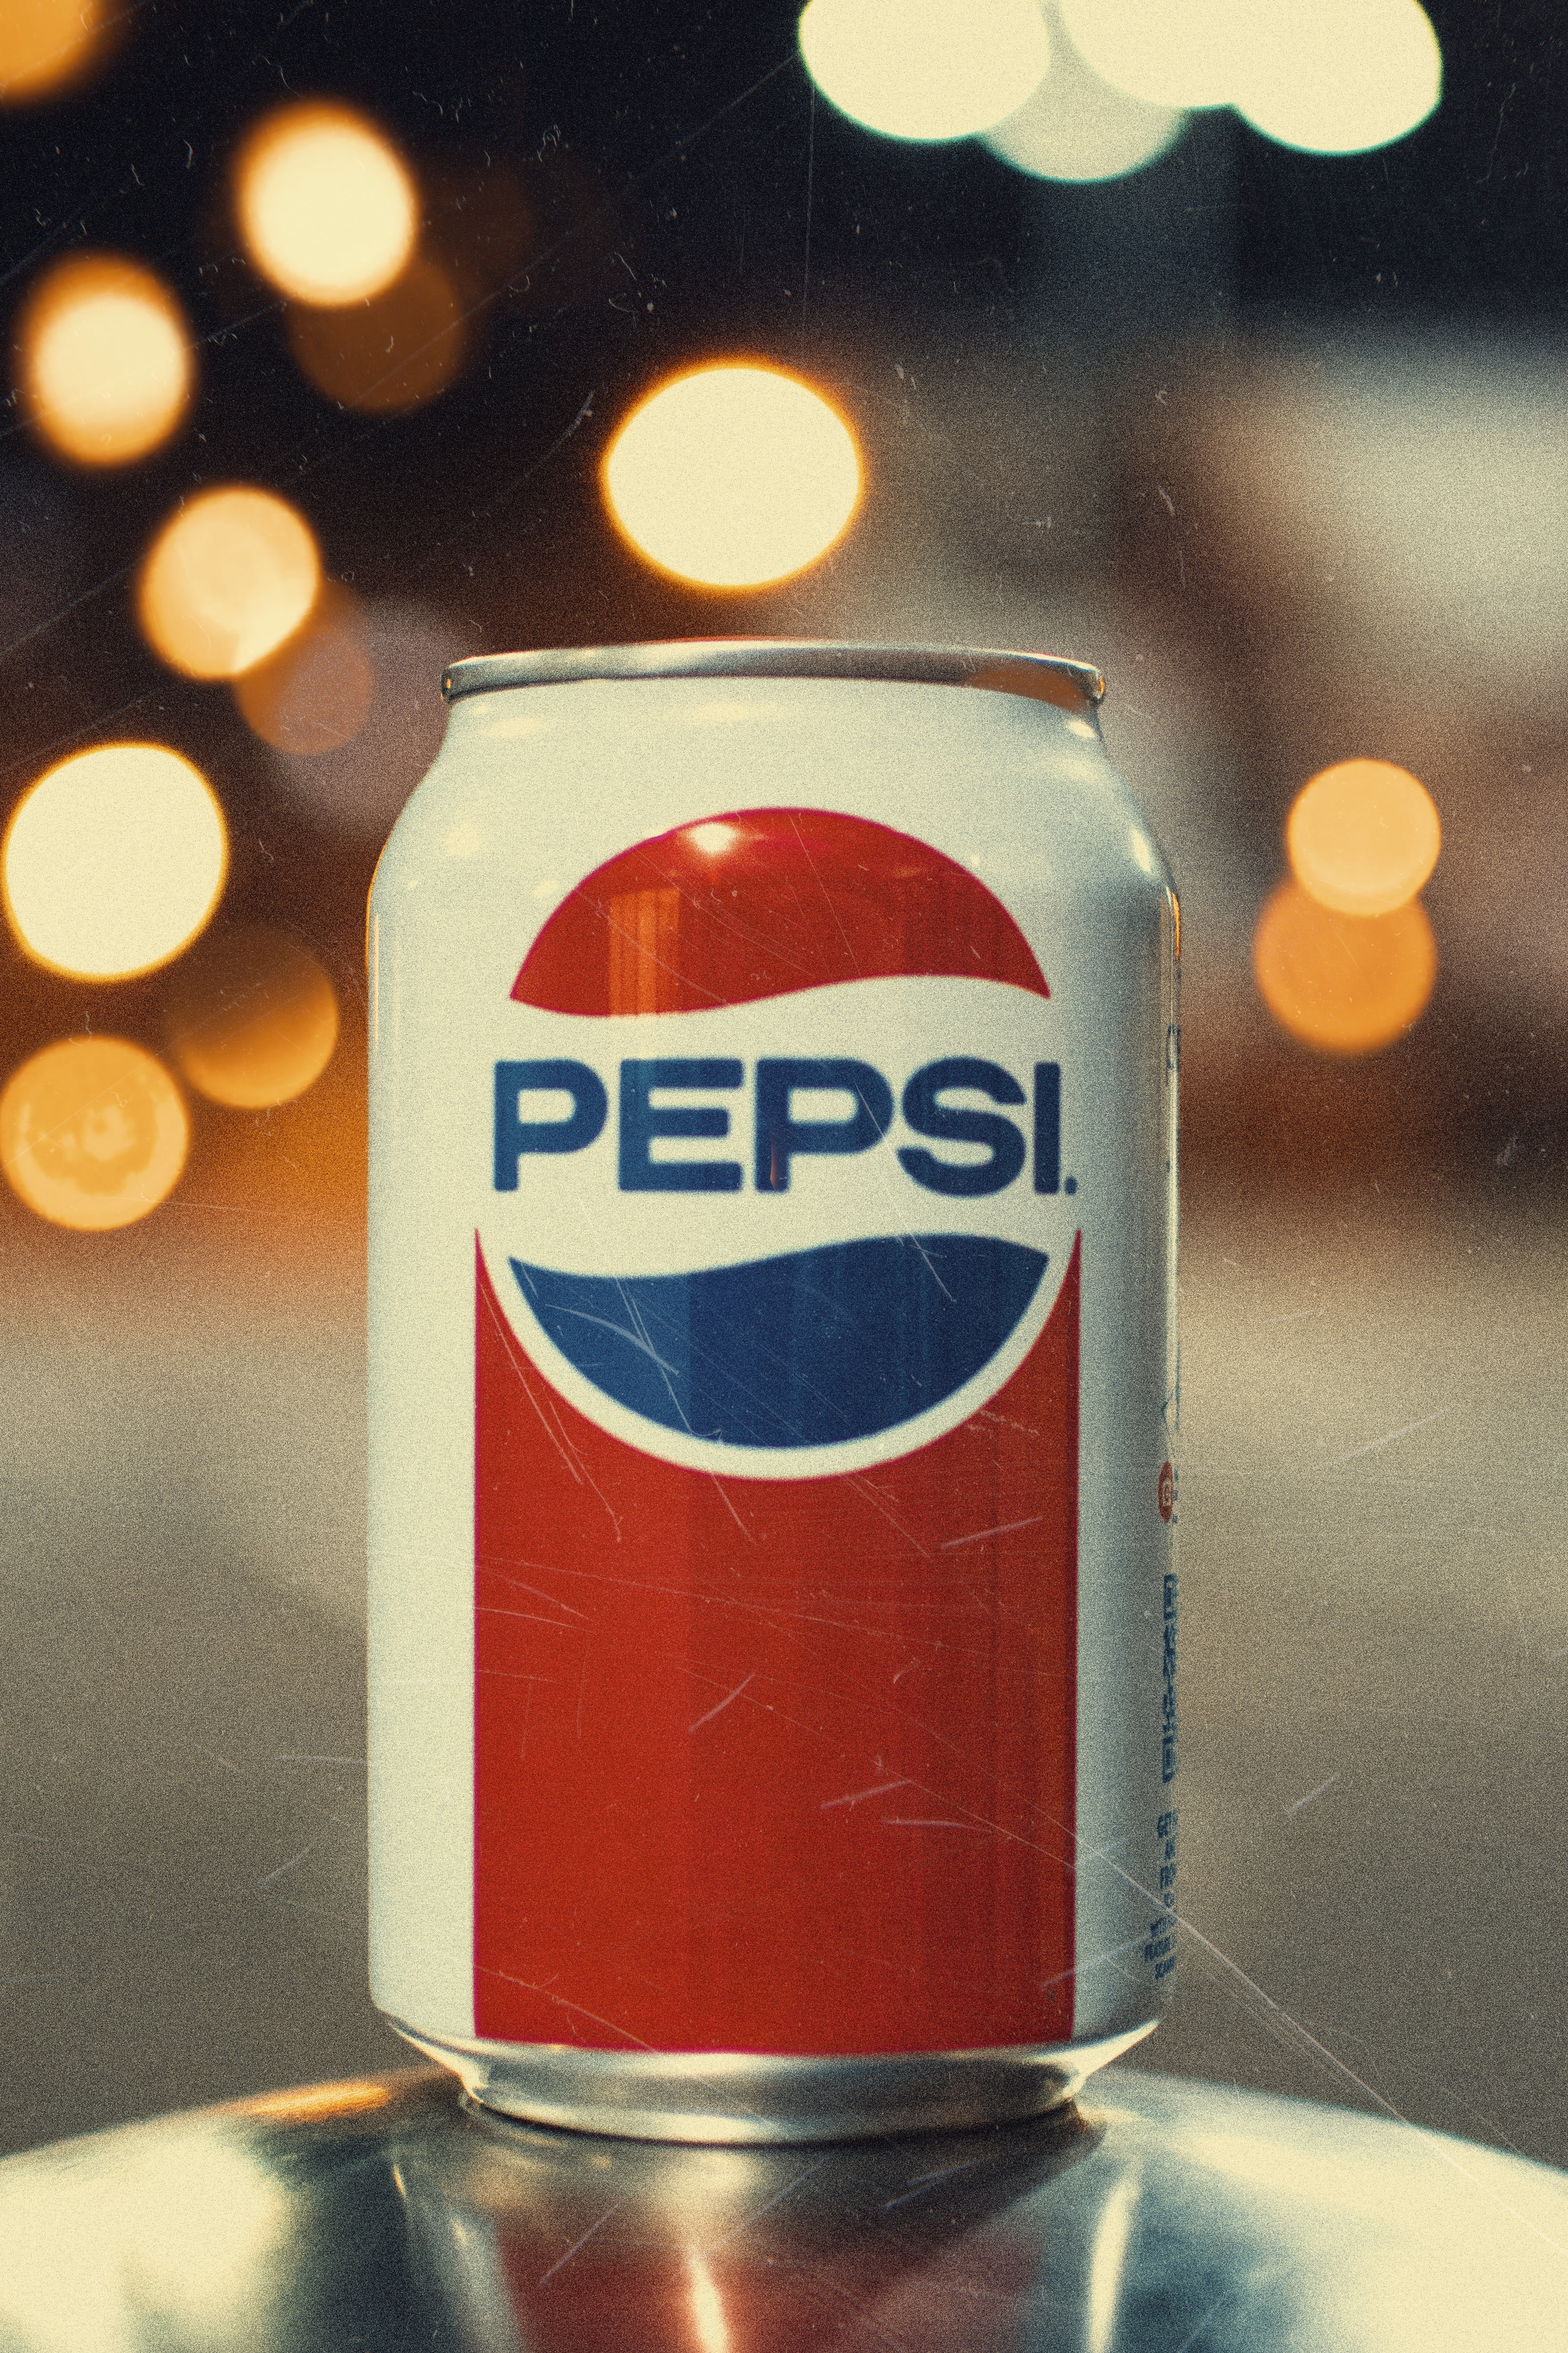 Pepsi can on gray surface